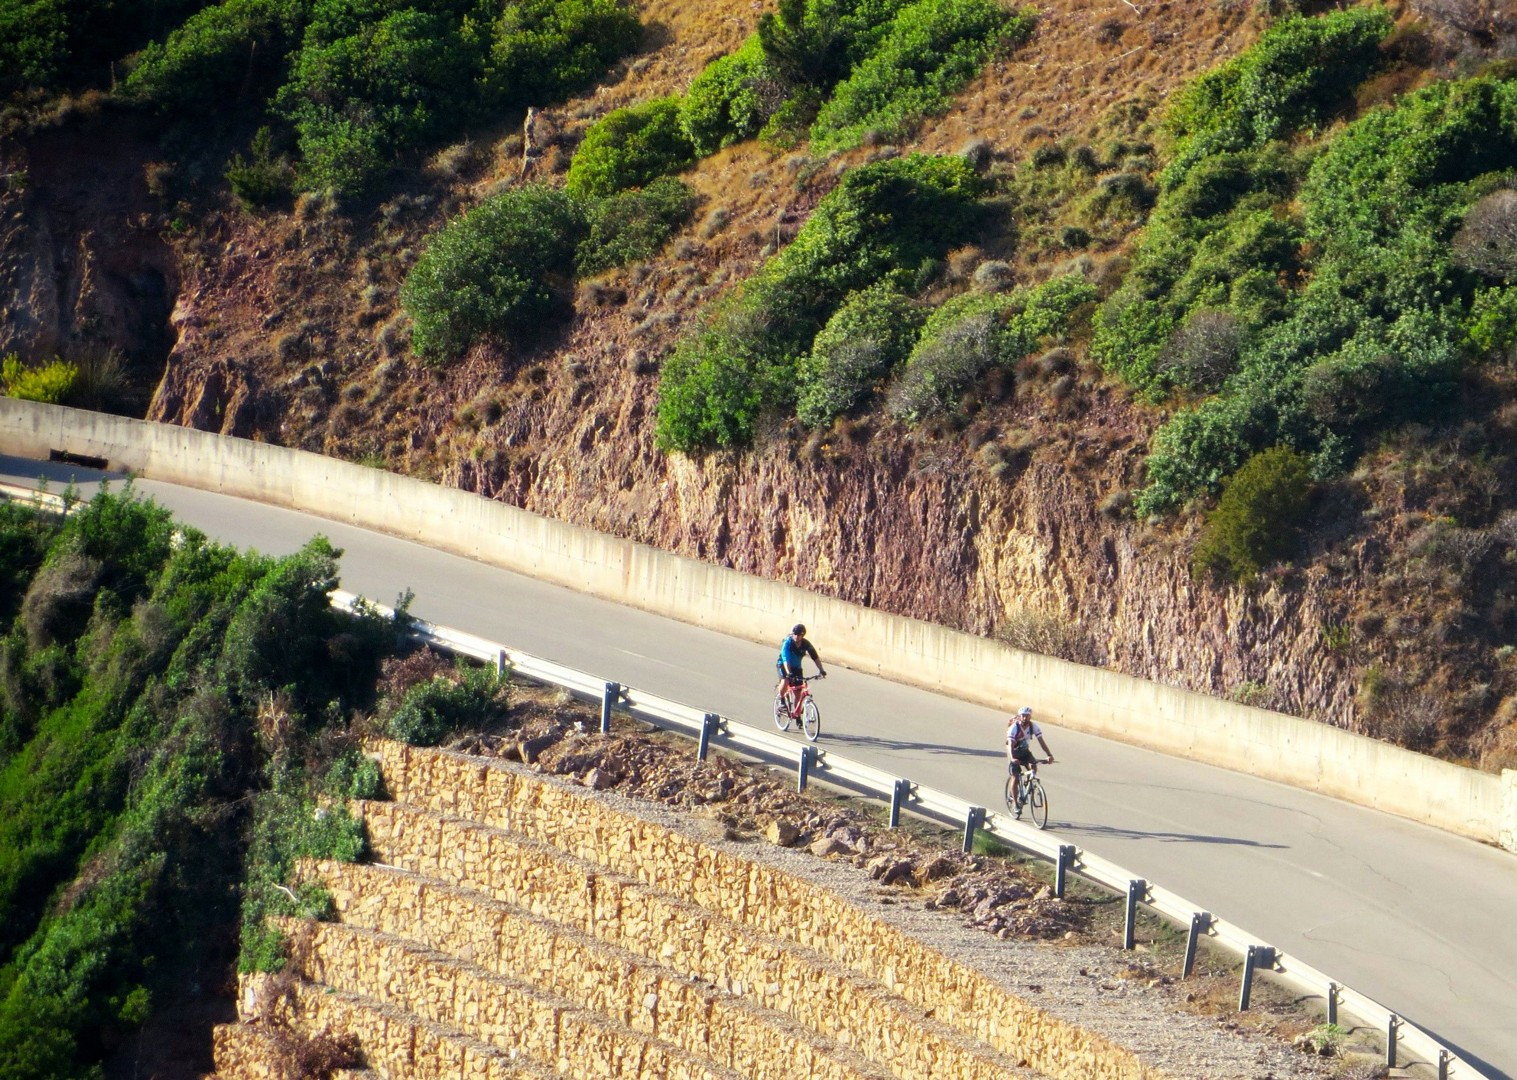 sardinia-coast-to-coast-cycling.jpg - Italy - Sardinia - Coast to Coast - Self-Guided Leisure Cycling Holiday - Italia Leisure and Family Cycling